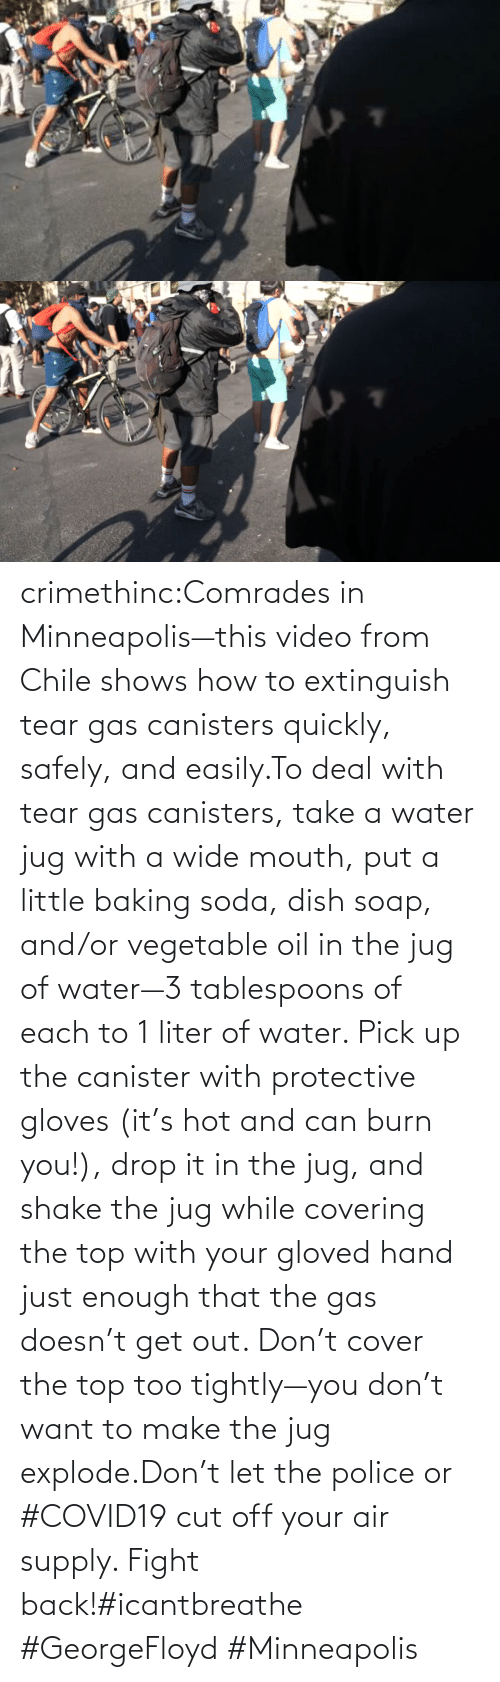 Cover: crimethinc:Comrades in Minneapolis—this video from Chile shows how to extinguish tear gas canisters quickly, safely, and easily.To deal with tear gas canisters, take a water jug with a wide mouth, put a little baking soda, dish soap, and/or vegetable oil in the jug of water—3 tablespoons of each to 1 liter of water. Pick up the canister with protective gloves (it's hot and can burn you!), drop it in the jug, and shake the jug while covering the top with your gloved hand just enough that the gas doesn't get out. Don't cover the top too tightly—you don't want to make the jug explode.Don't let the police or #COVID19 cut off your air supply. Fight back!#icantbreathe #GeorgeFloyd #Minneapolis